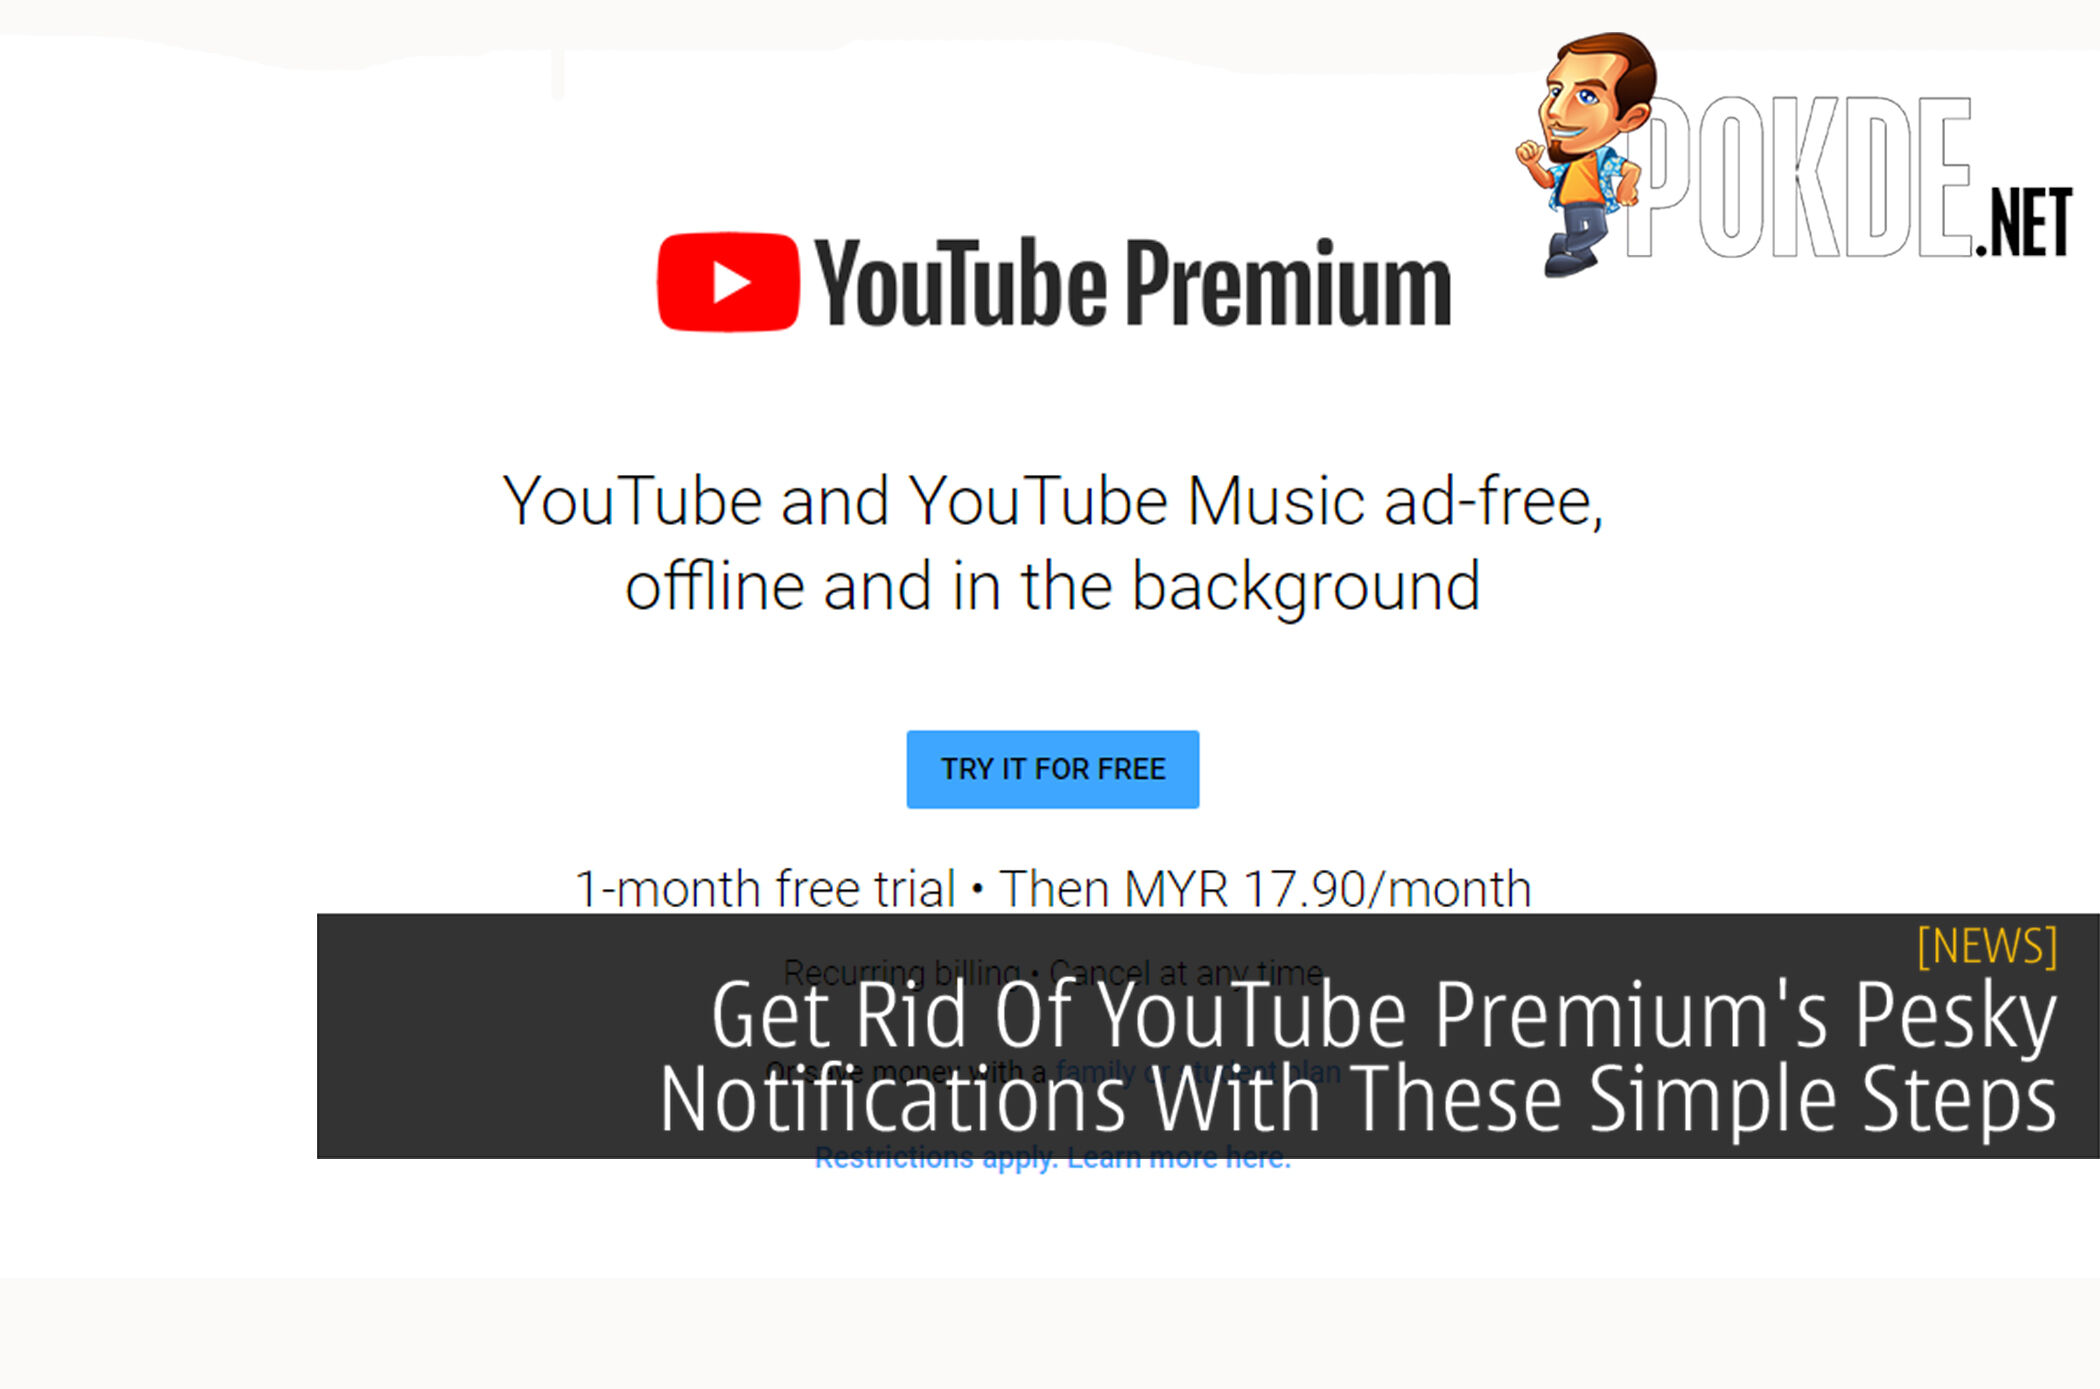 Get Rid Of YouTube Premium's Pesky Notifications With These Simple Steps 11